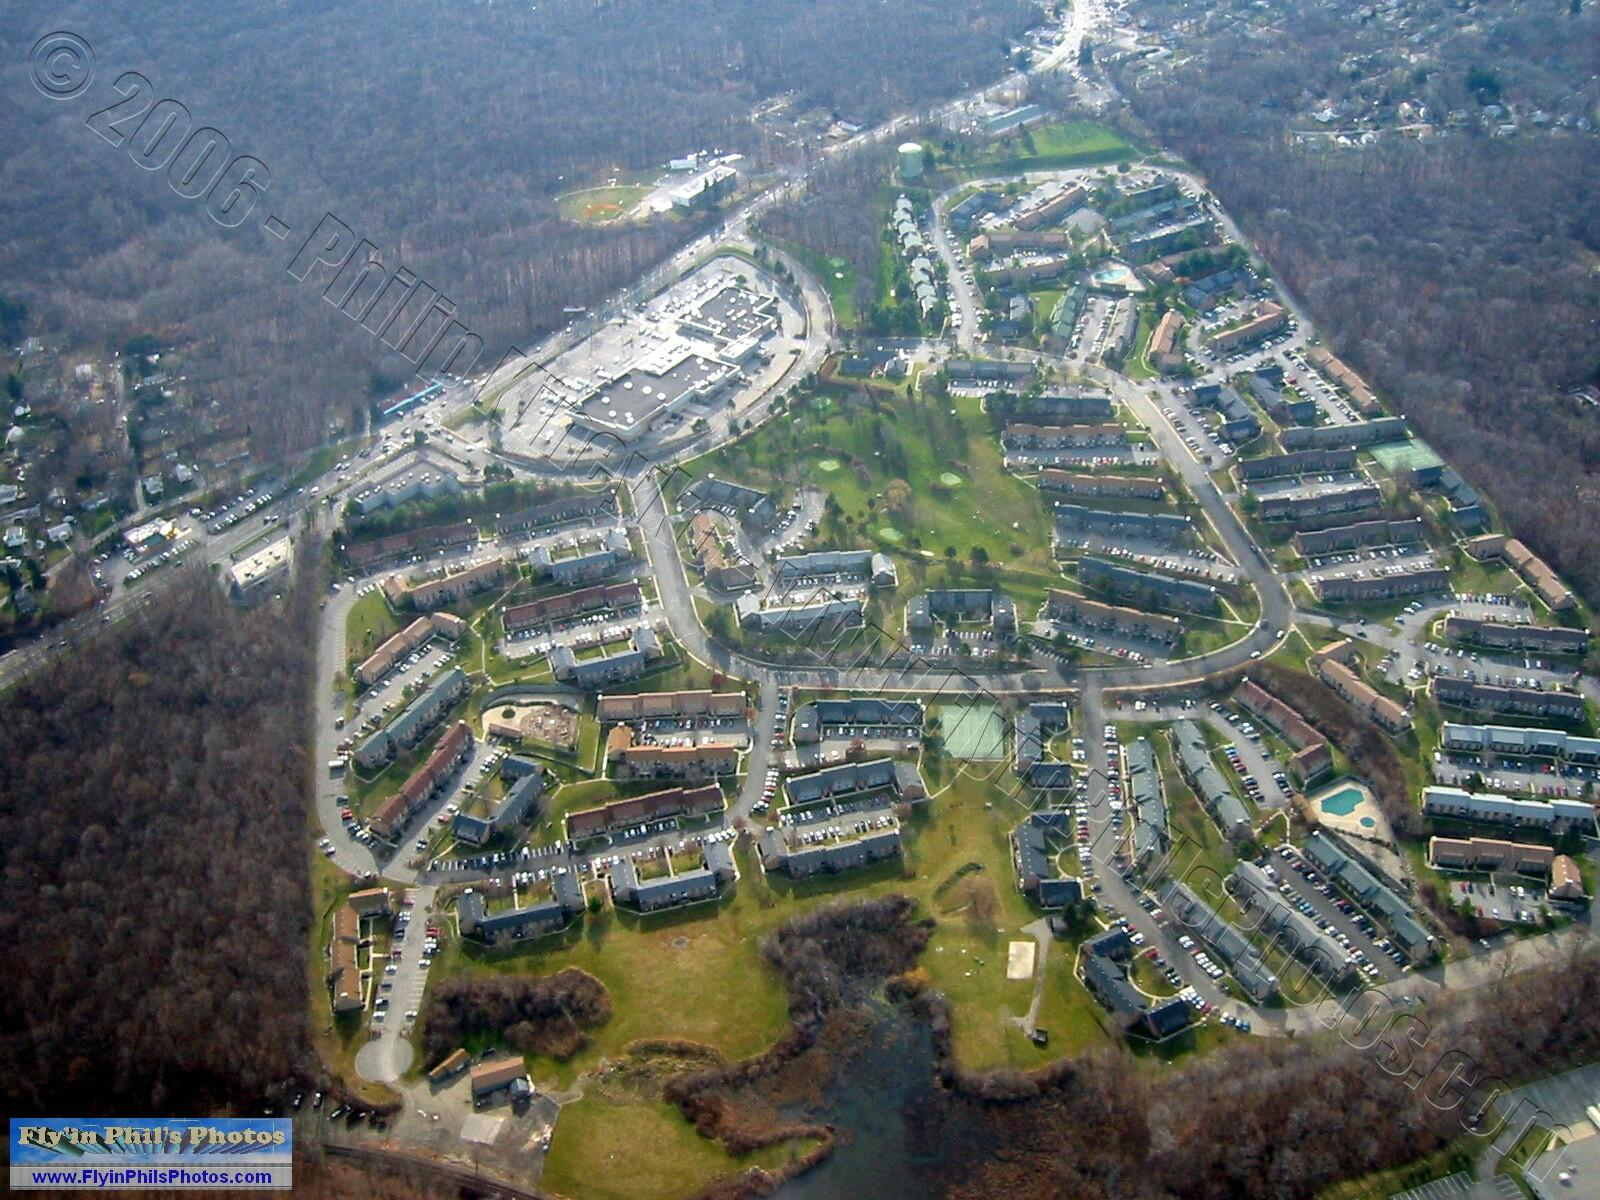 Fly'in Phil's Photos - Places of Interest (Land-Locked ...